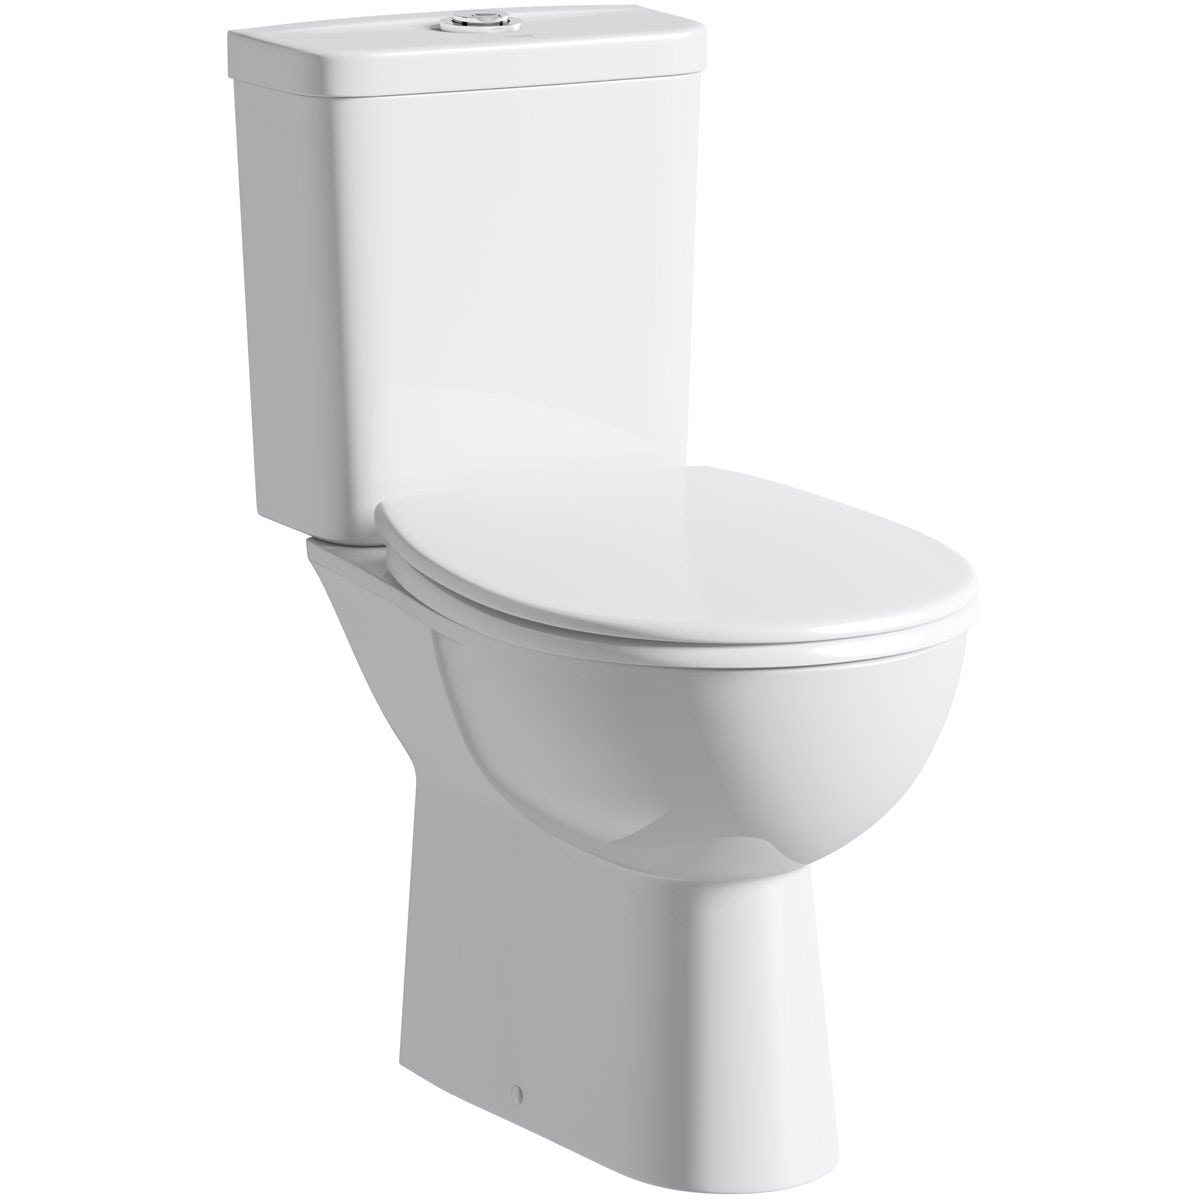 grohe bau rimless close coupled toilet with soft close seat. Black Bedroom Furniture Sets. Home Design Ideas